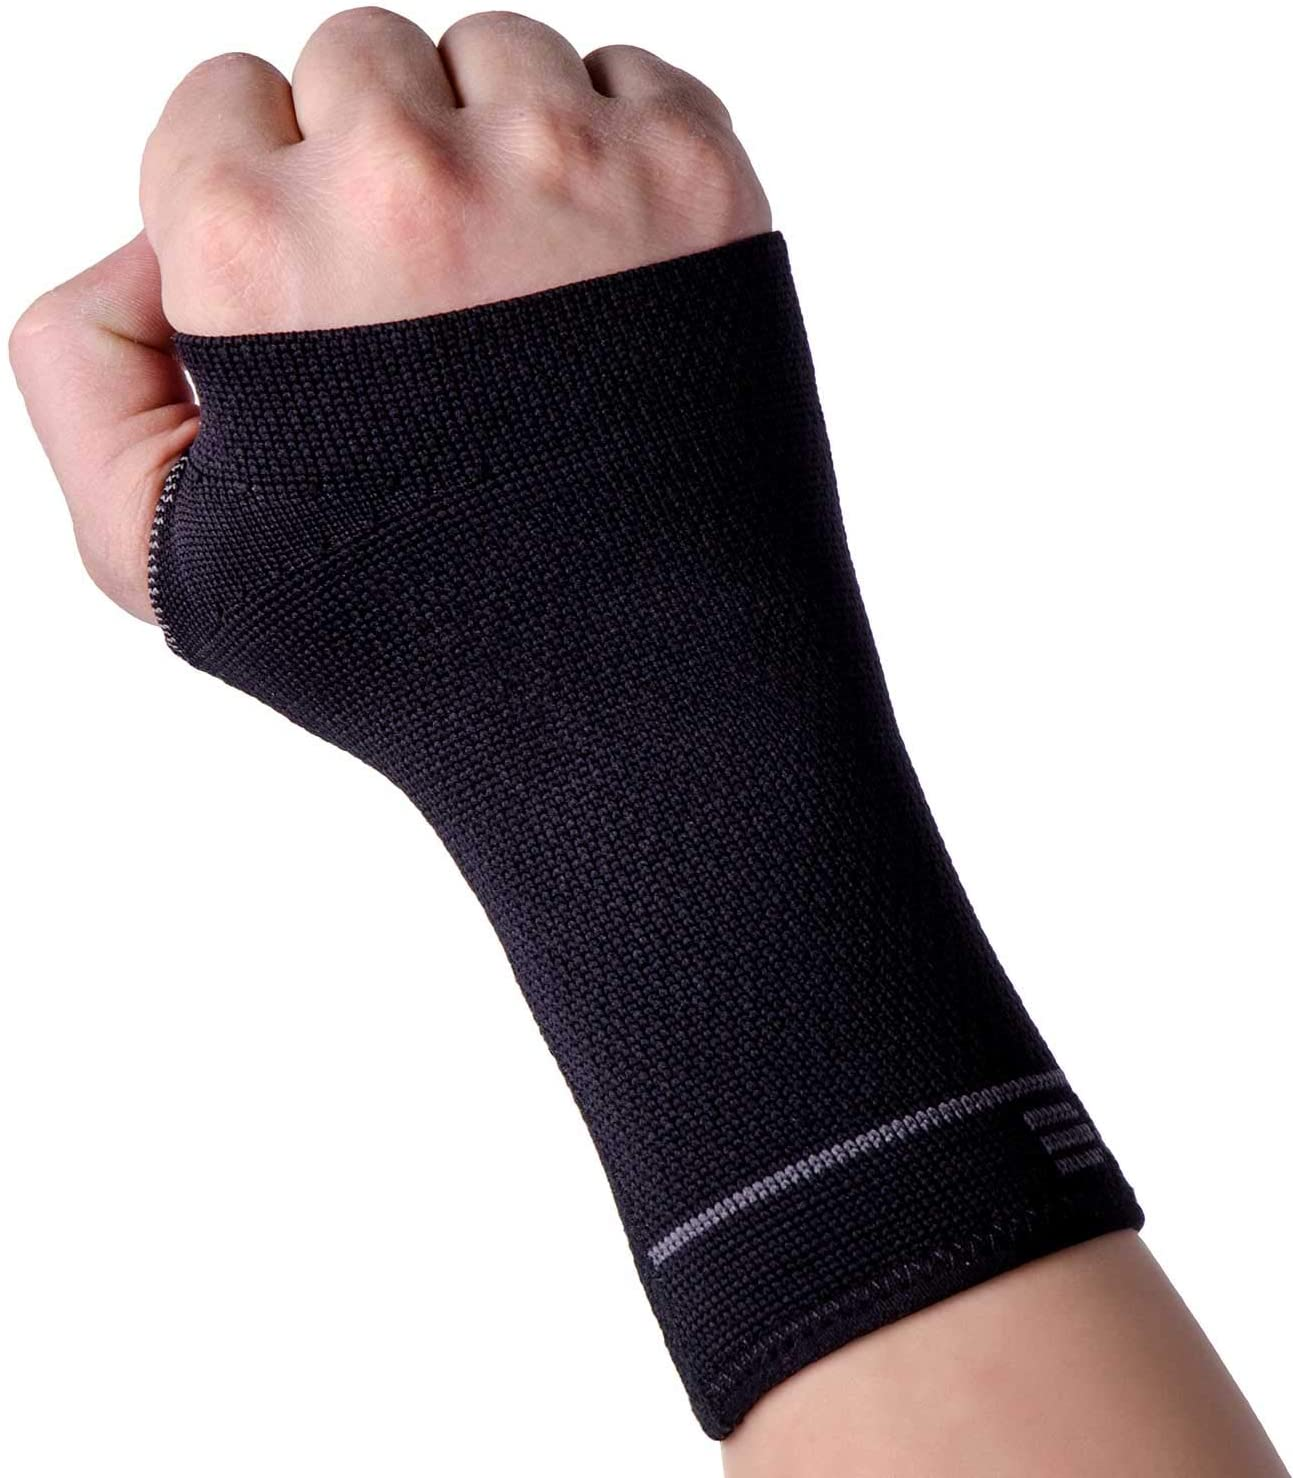 Compression Wrist Support Sleeve - Relieve Carpel Tunnel, Wrist Pain - Best Wrist Support - Improve Circulation and Support Wrist